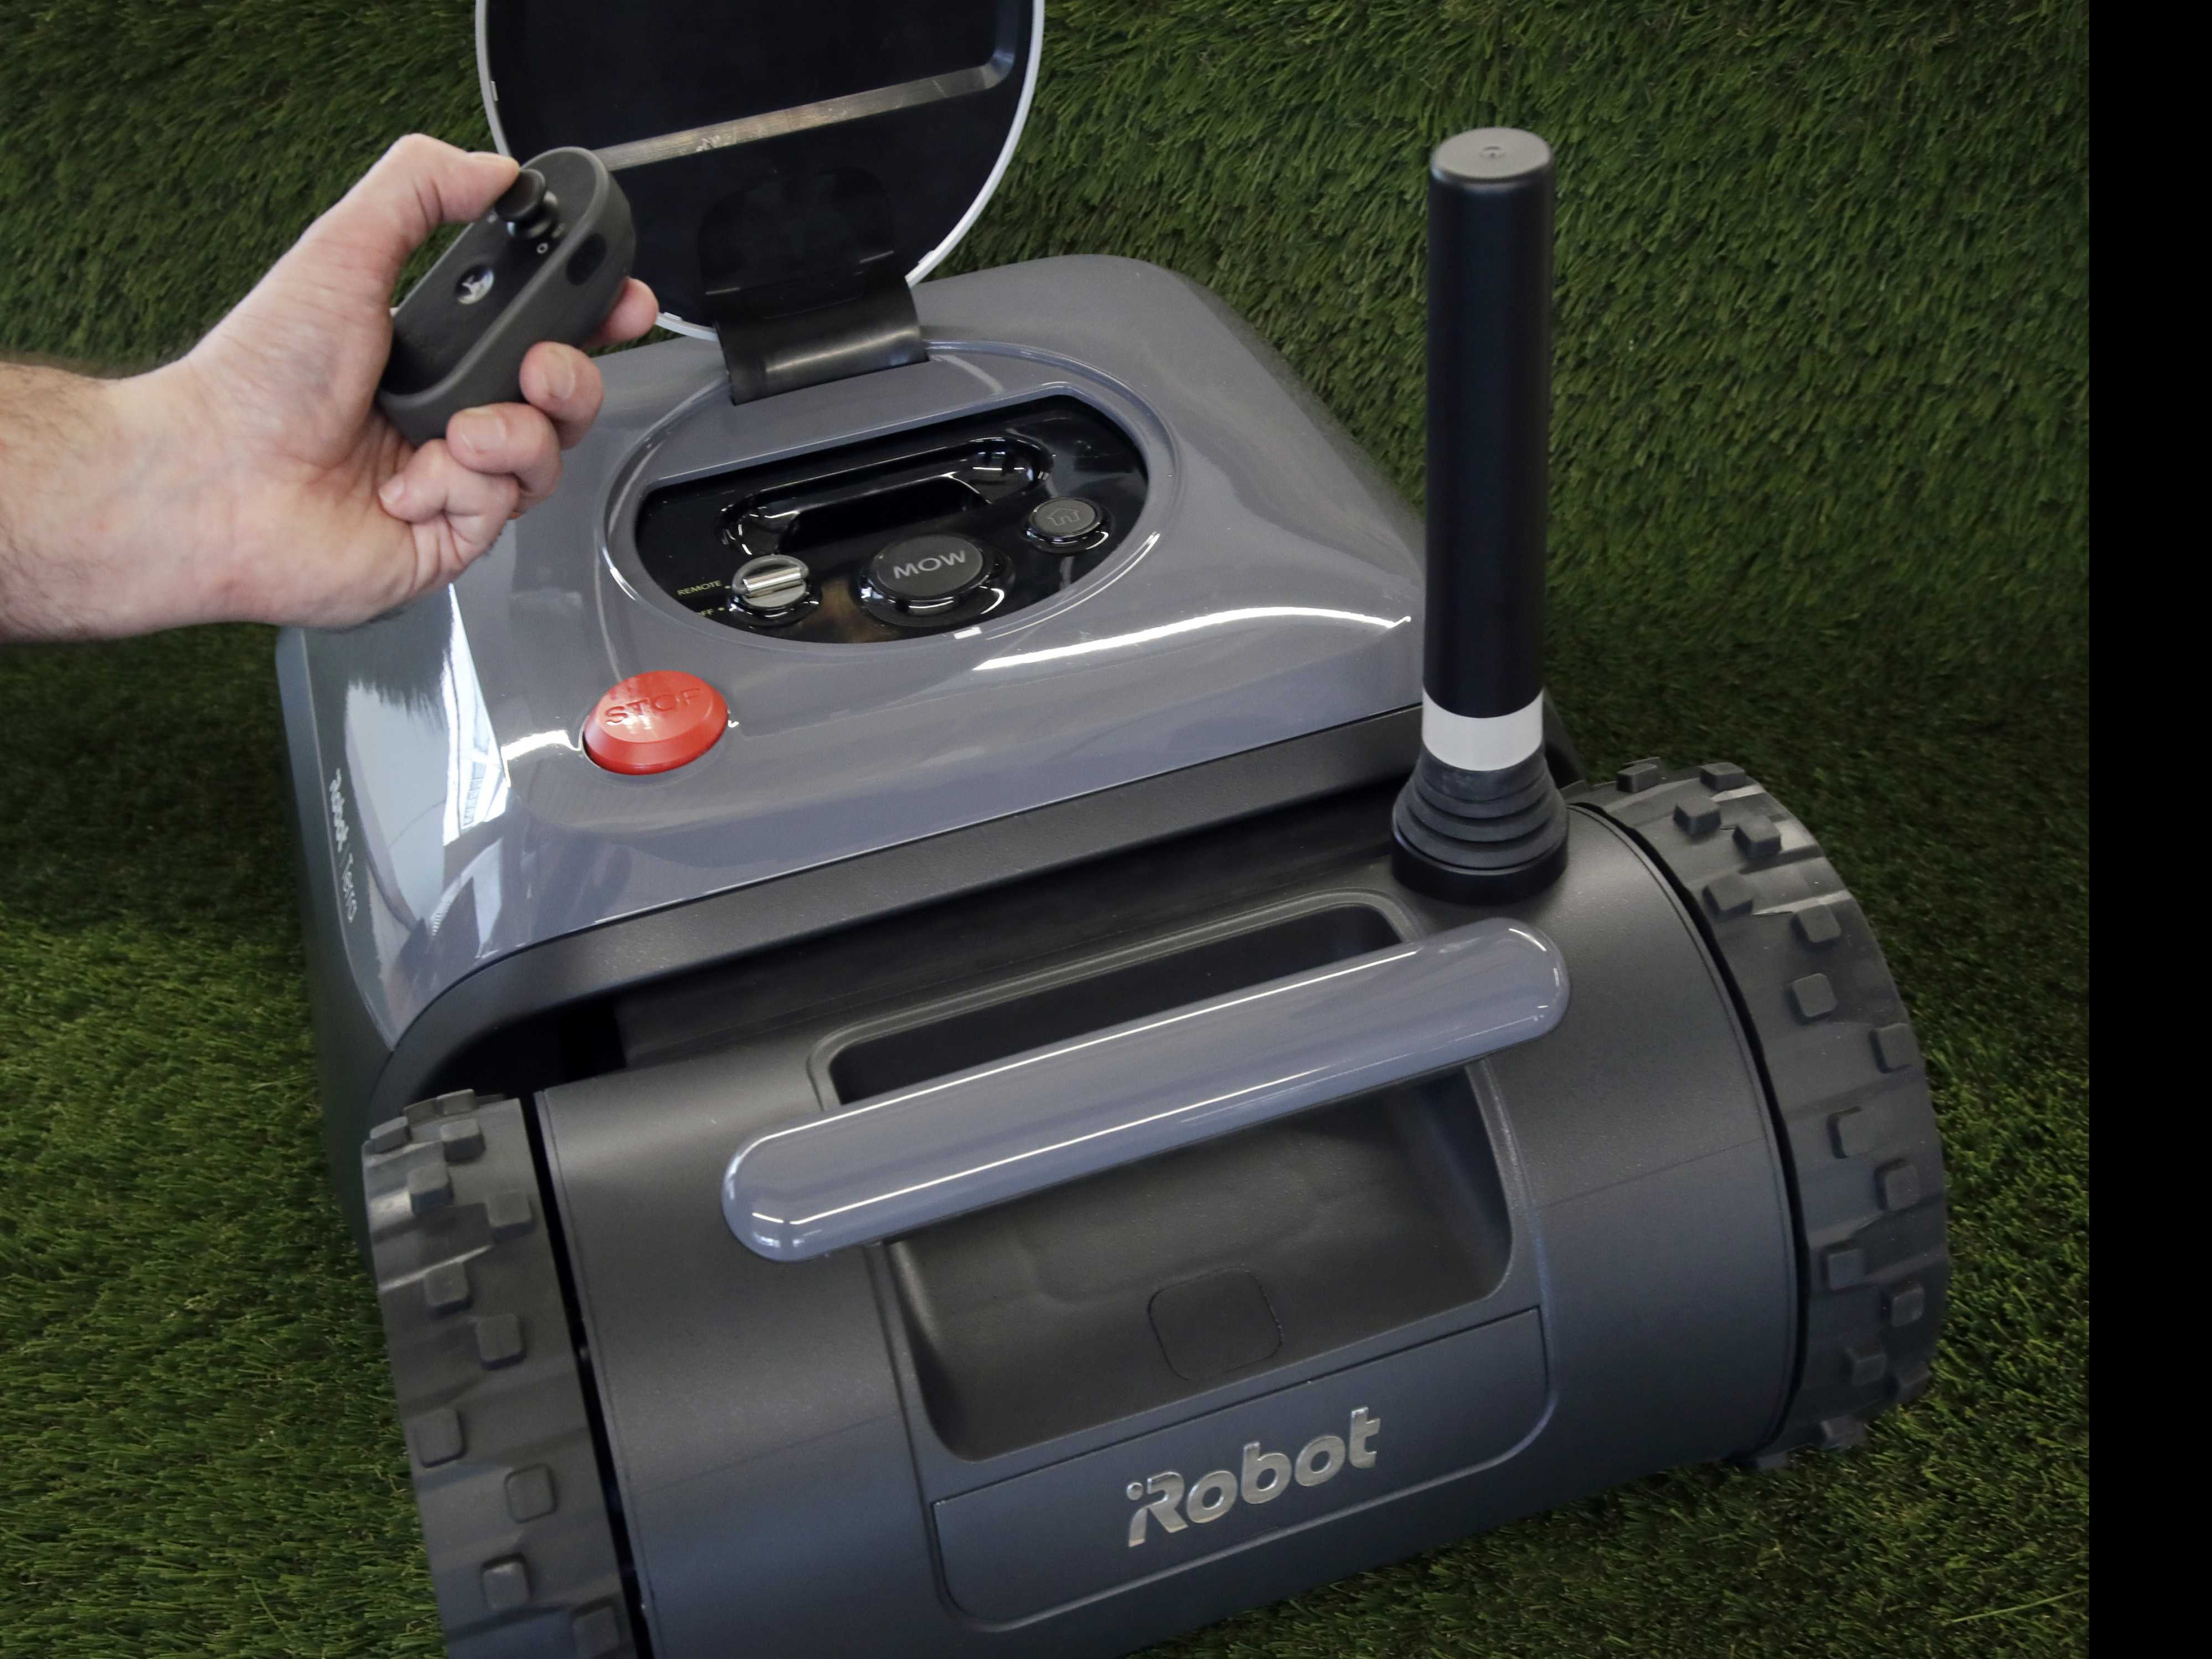 Where's My Robot Lawn Mower? Roomba Maker Now Has An Answer